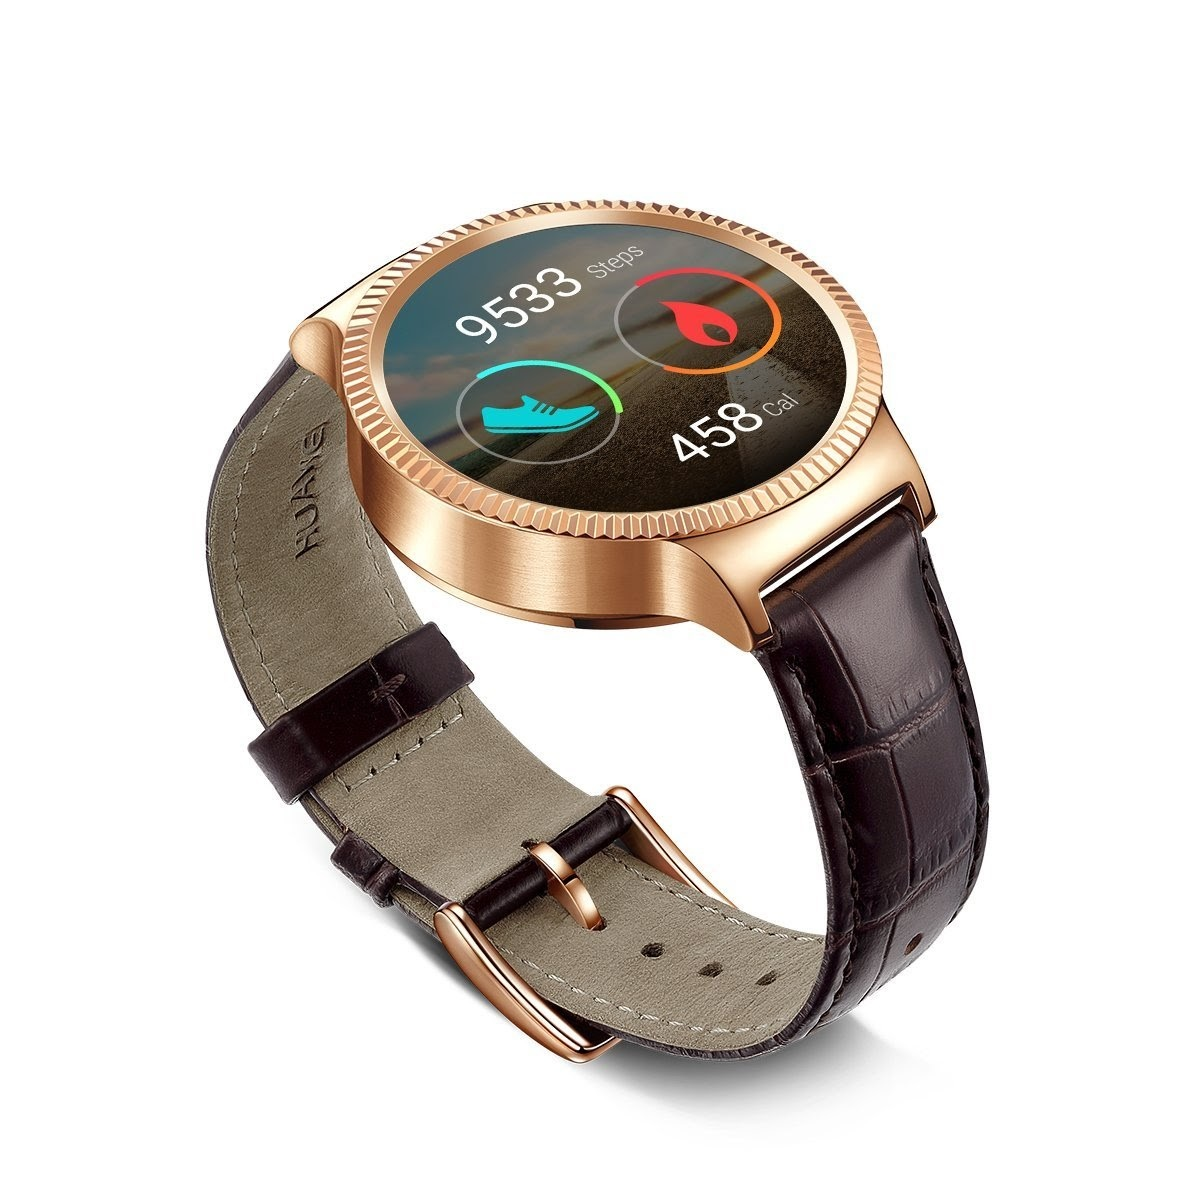 Huawei Men's And Women's Watches Gone From Google Store ...